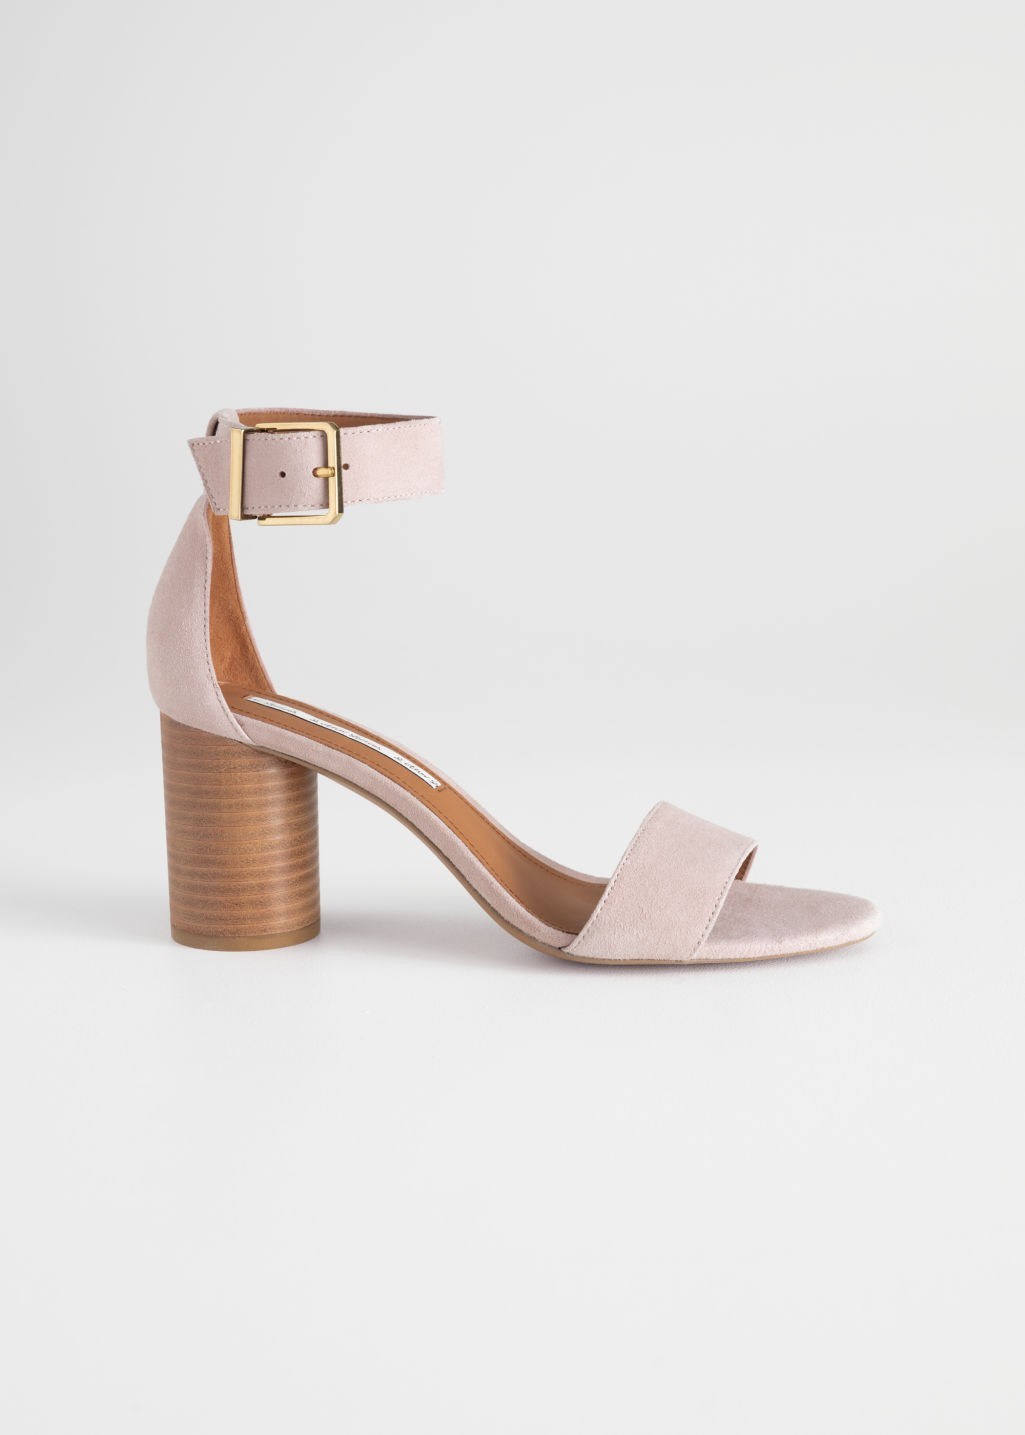 59f5c0f0cff9 Square Buckle Heeled Sandals